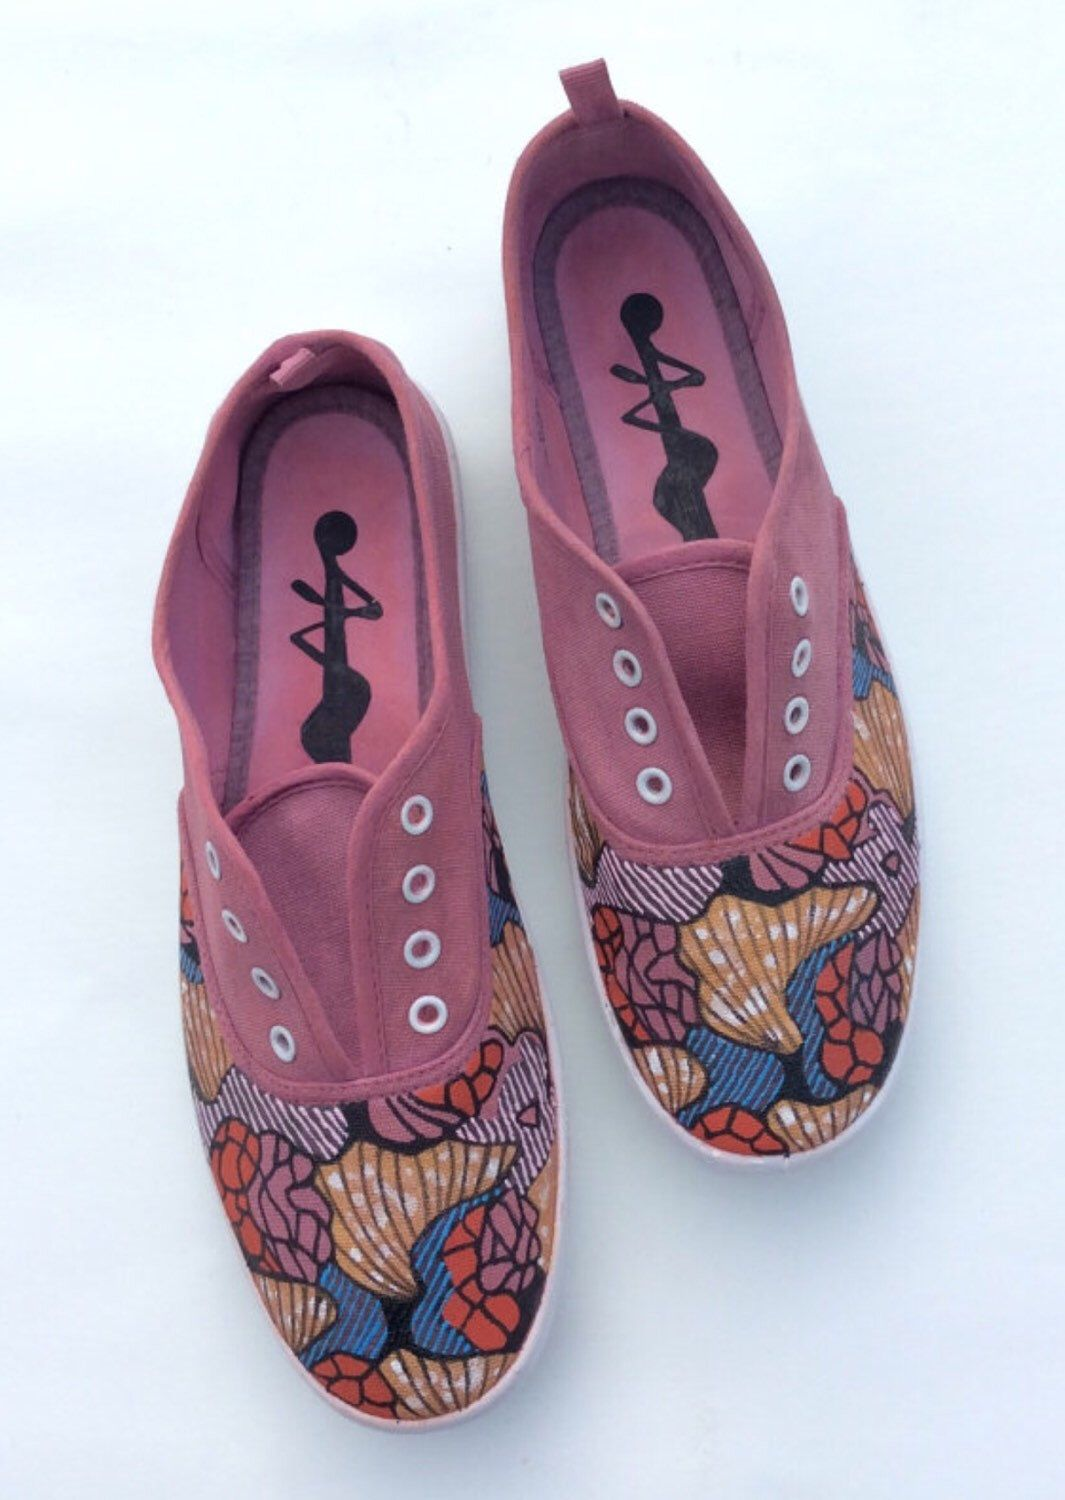 Berry Ethnic Shoes by 2Woo on Etsy https://www.etsy.com/listing/230573663/berry-ethnic-shoes